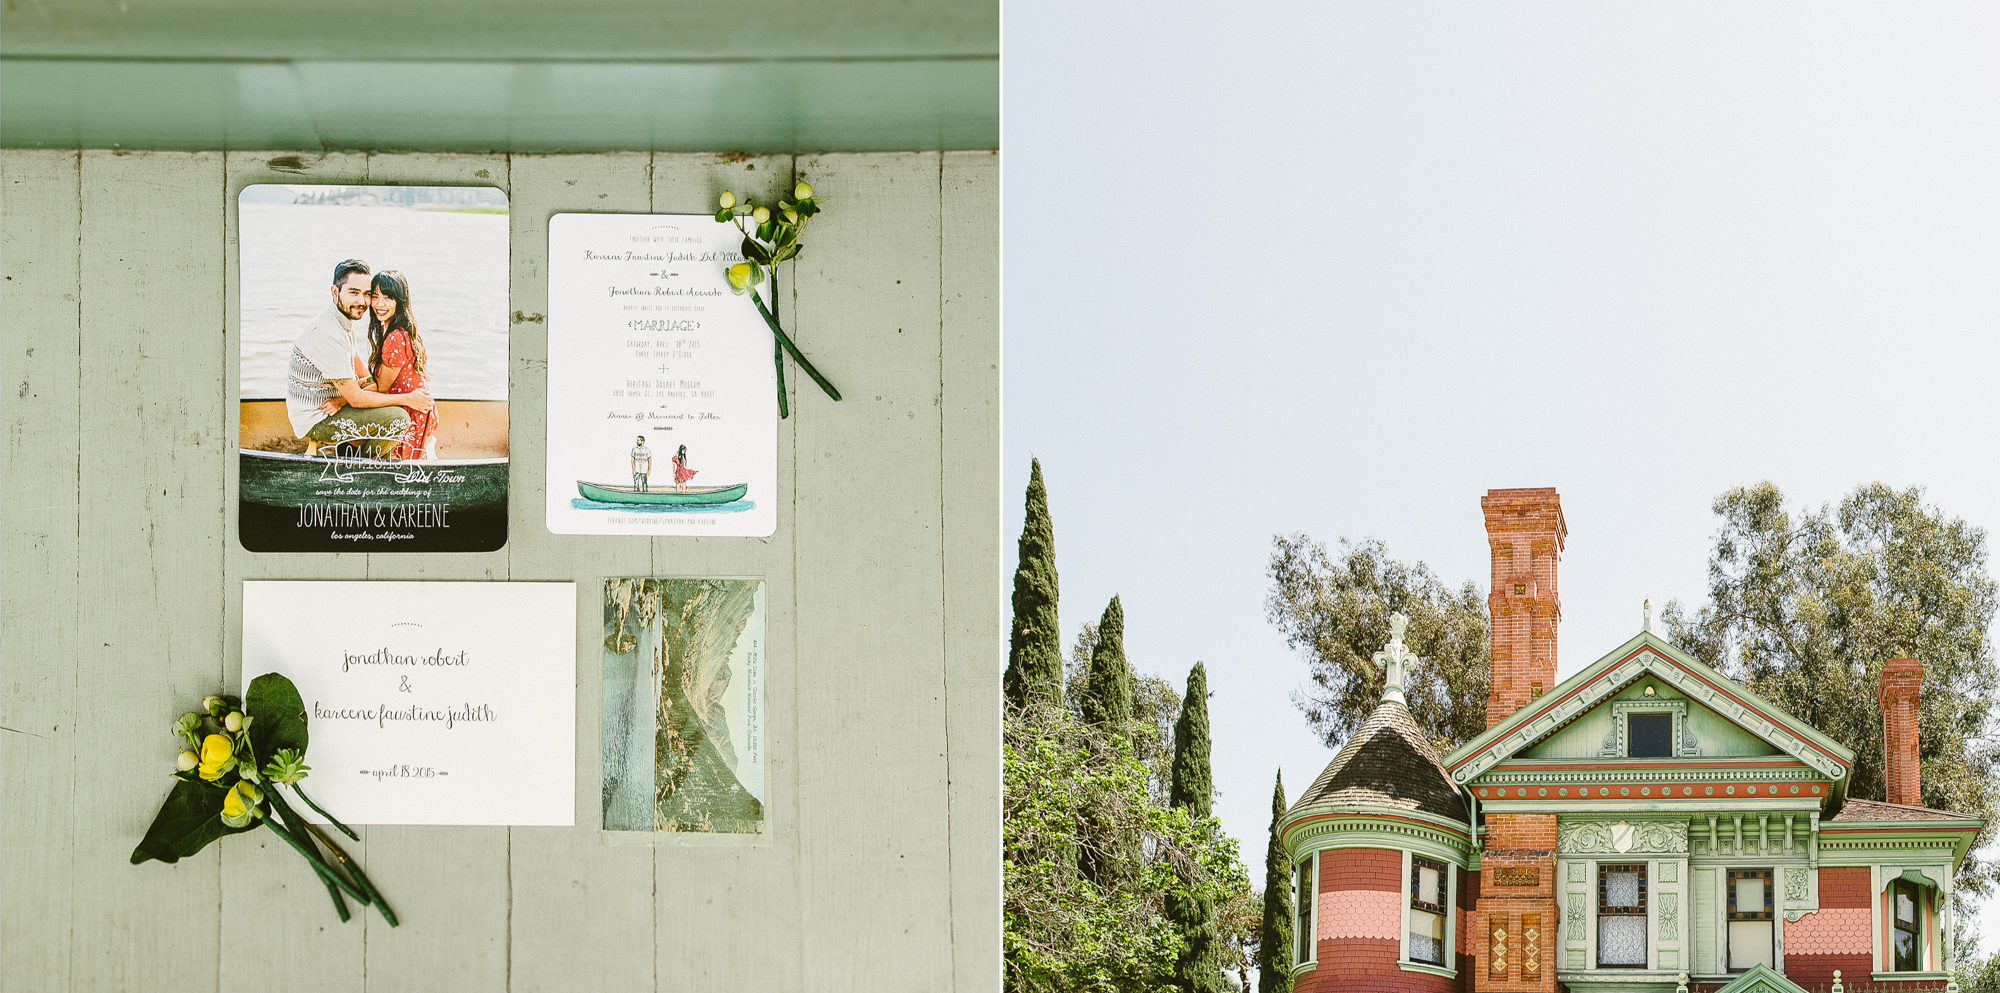 Isaiah & Taylor Photography - Los Angeles - Destination Wedding Photographers - Heritage Square Museum -21.jpg